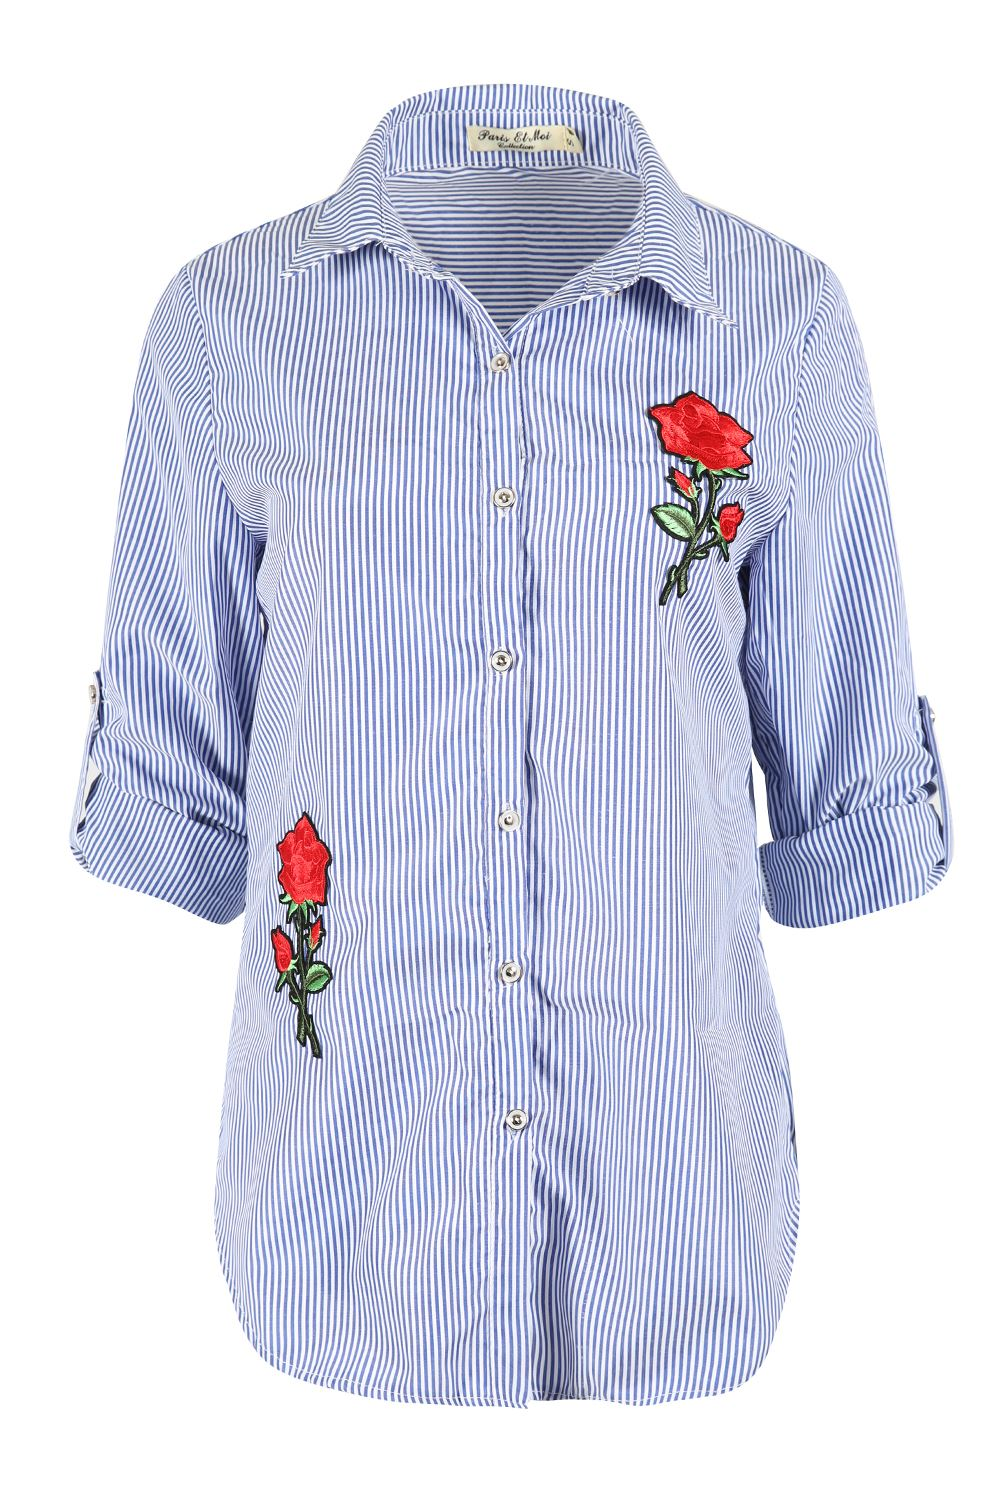 Ladies womens embroidered floral rose striped shirt